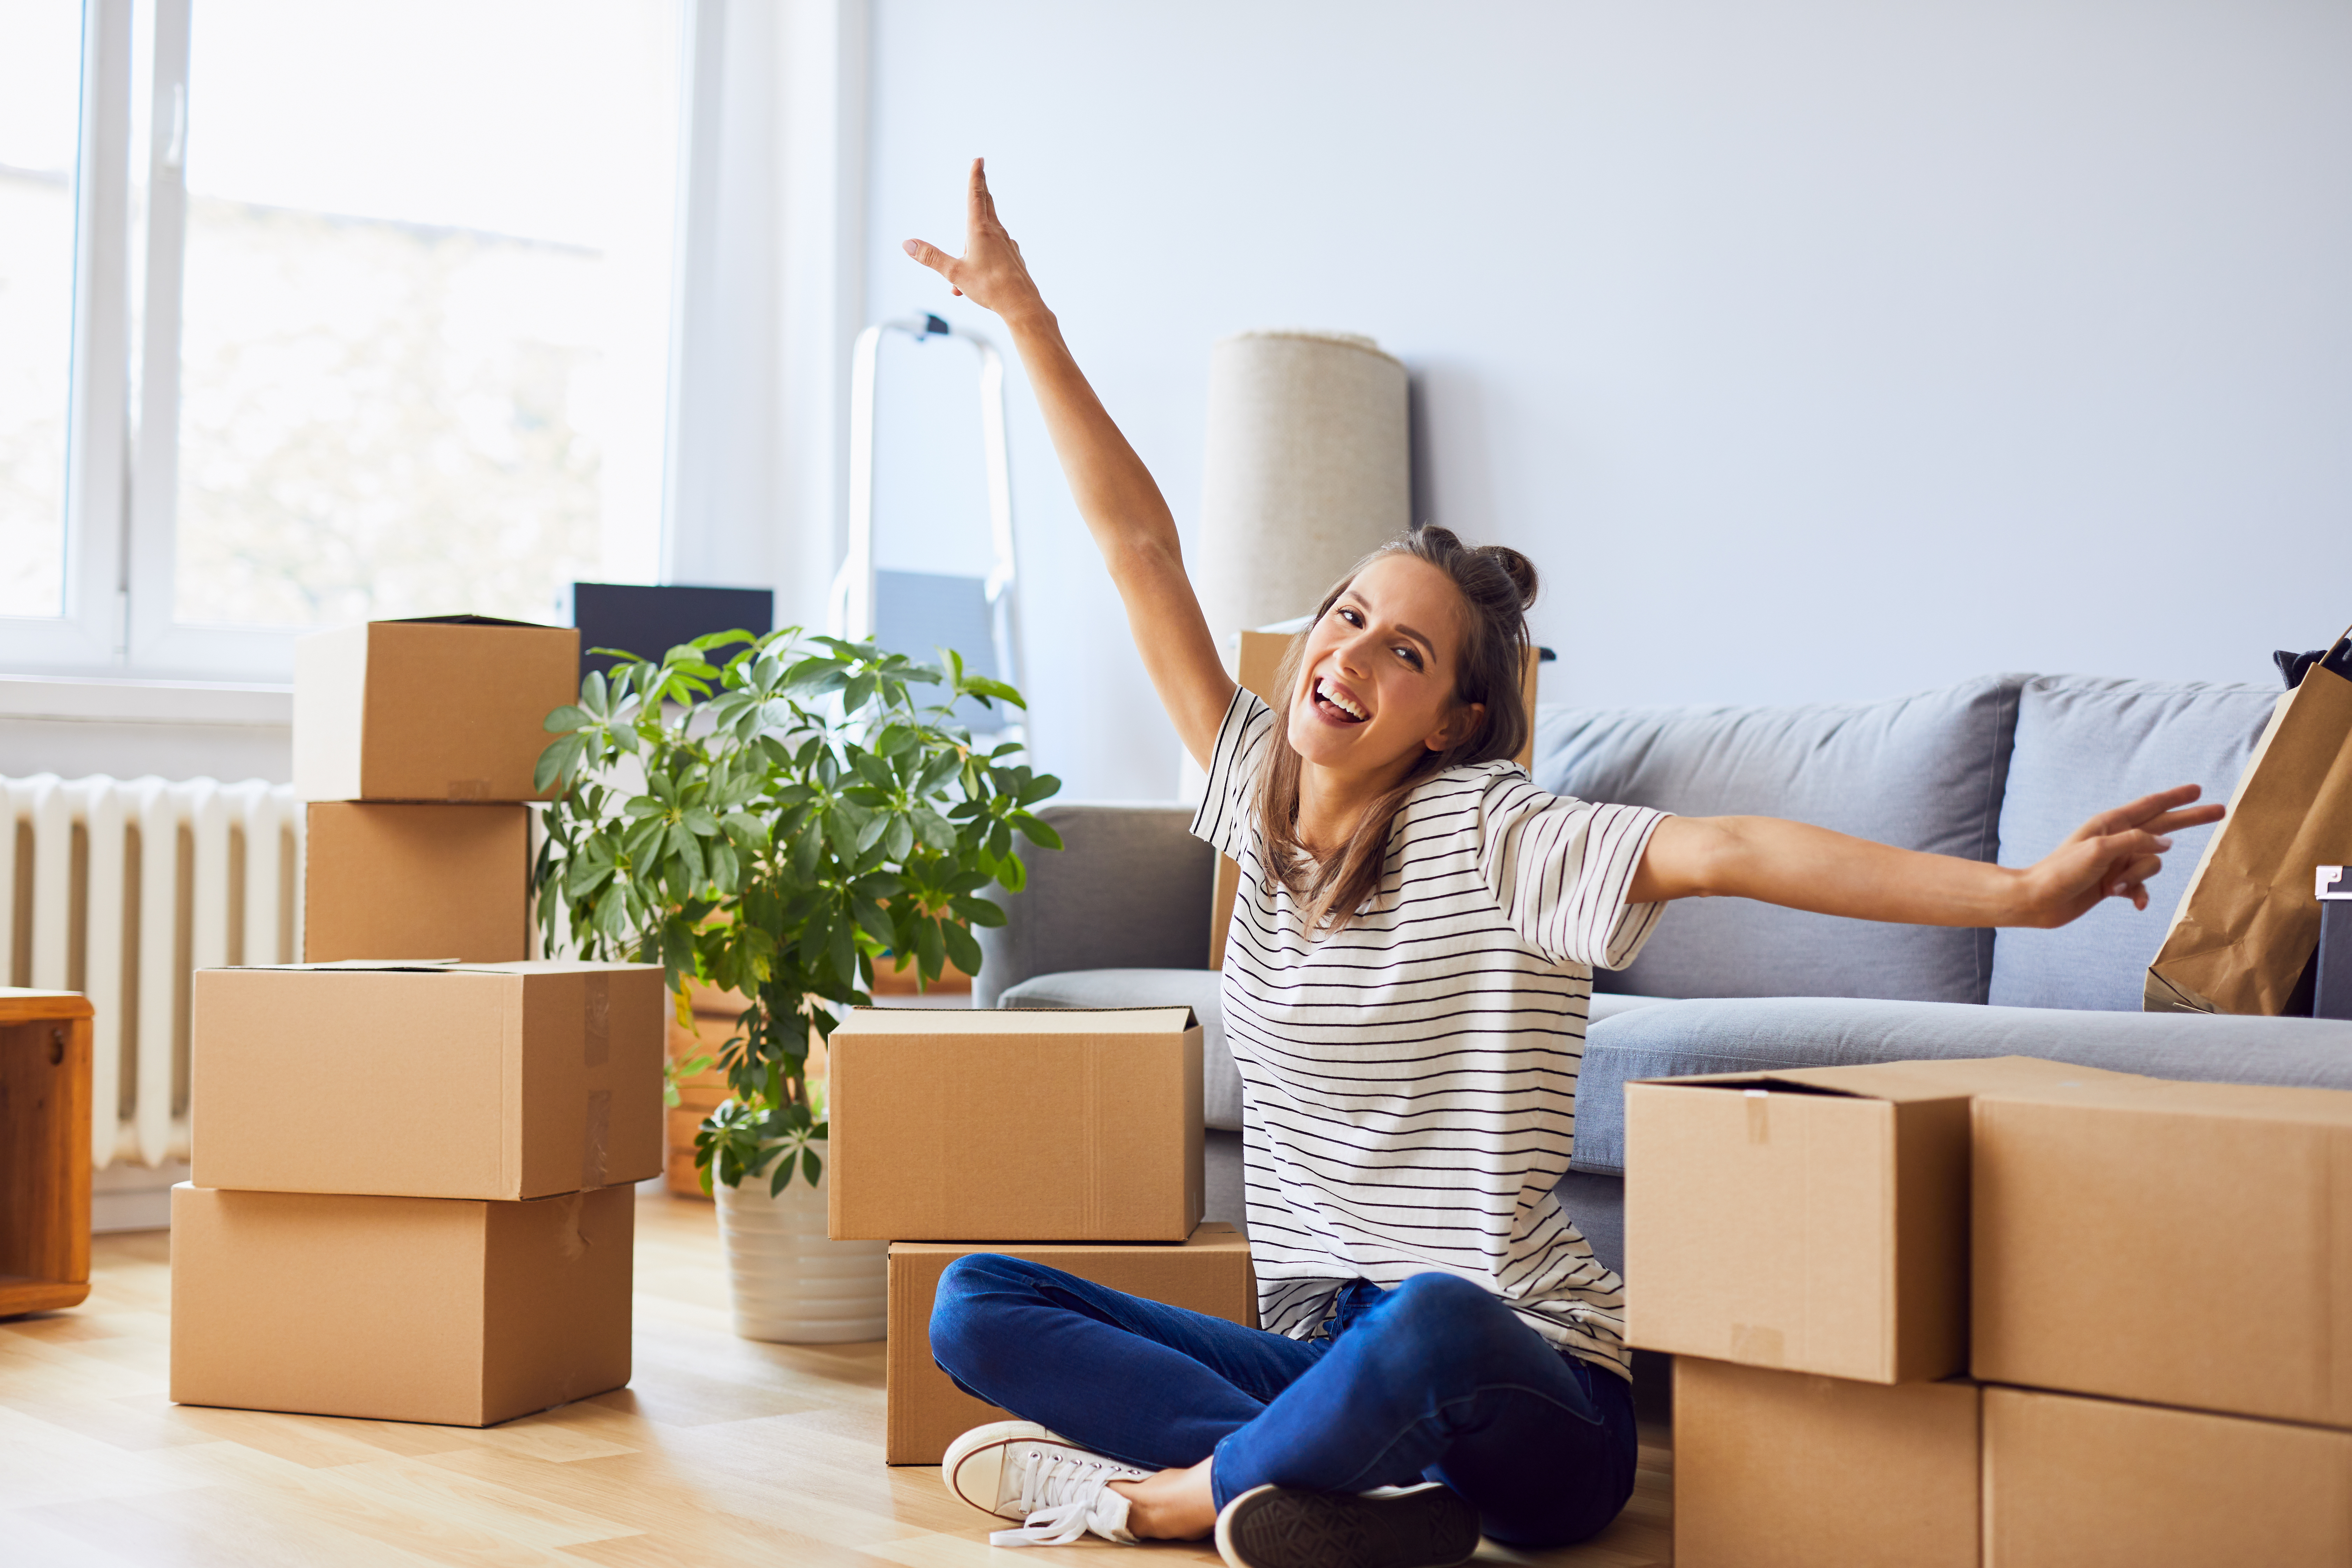 Young woman unpacking boxes